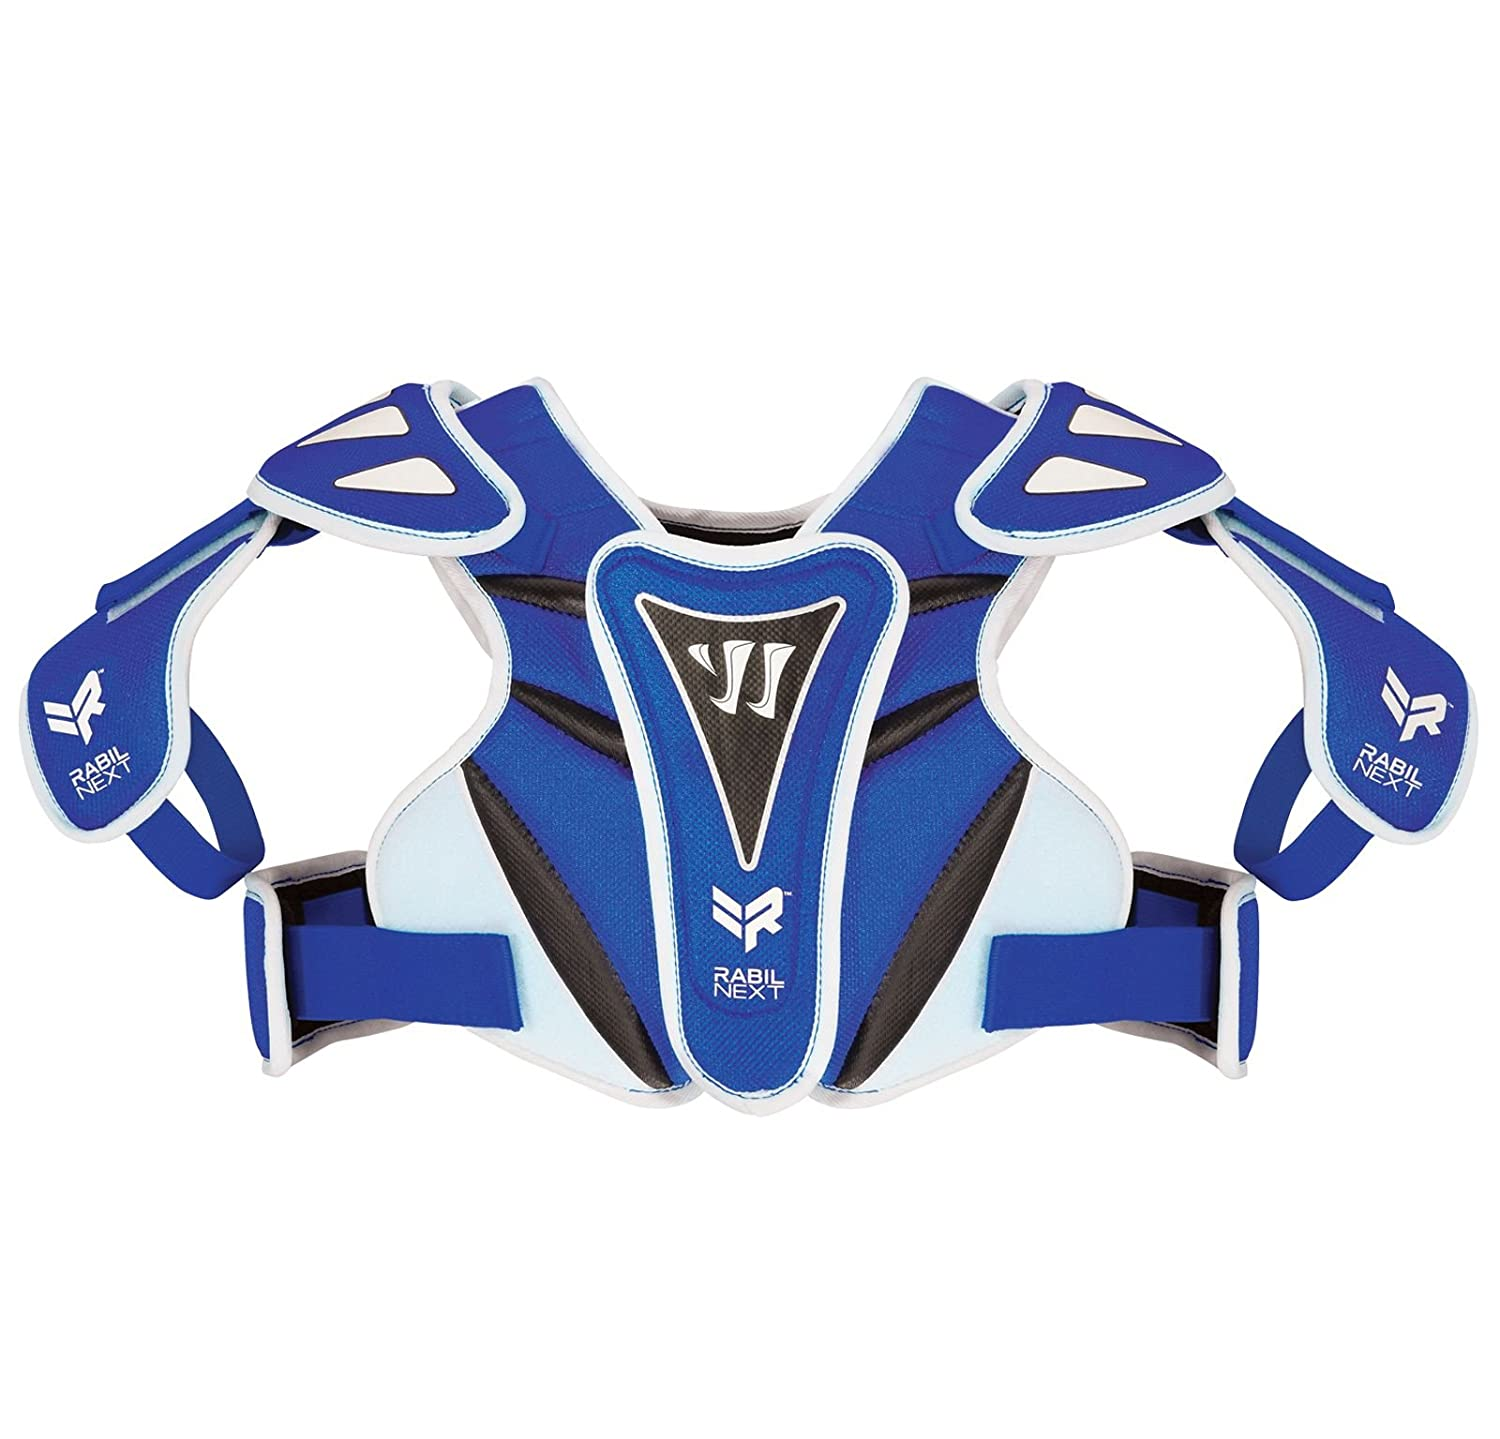 Youth X-Small Brine-Warrior Lacrosse RBNXTSP WARRIOR Rabil Next Shoulder Pads Royal Blue